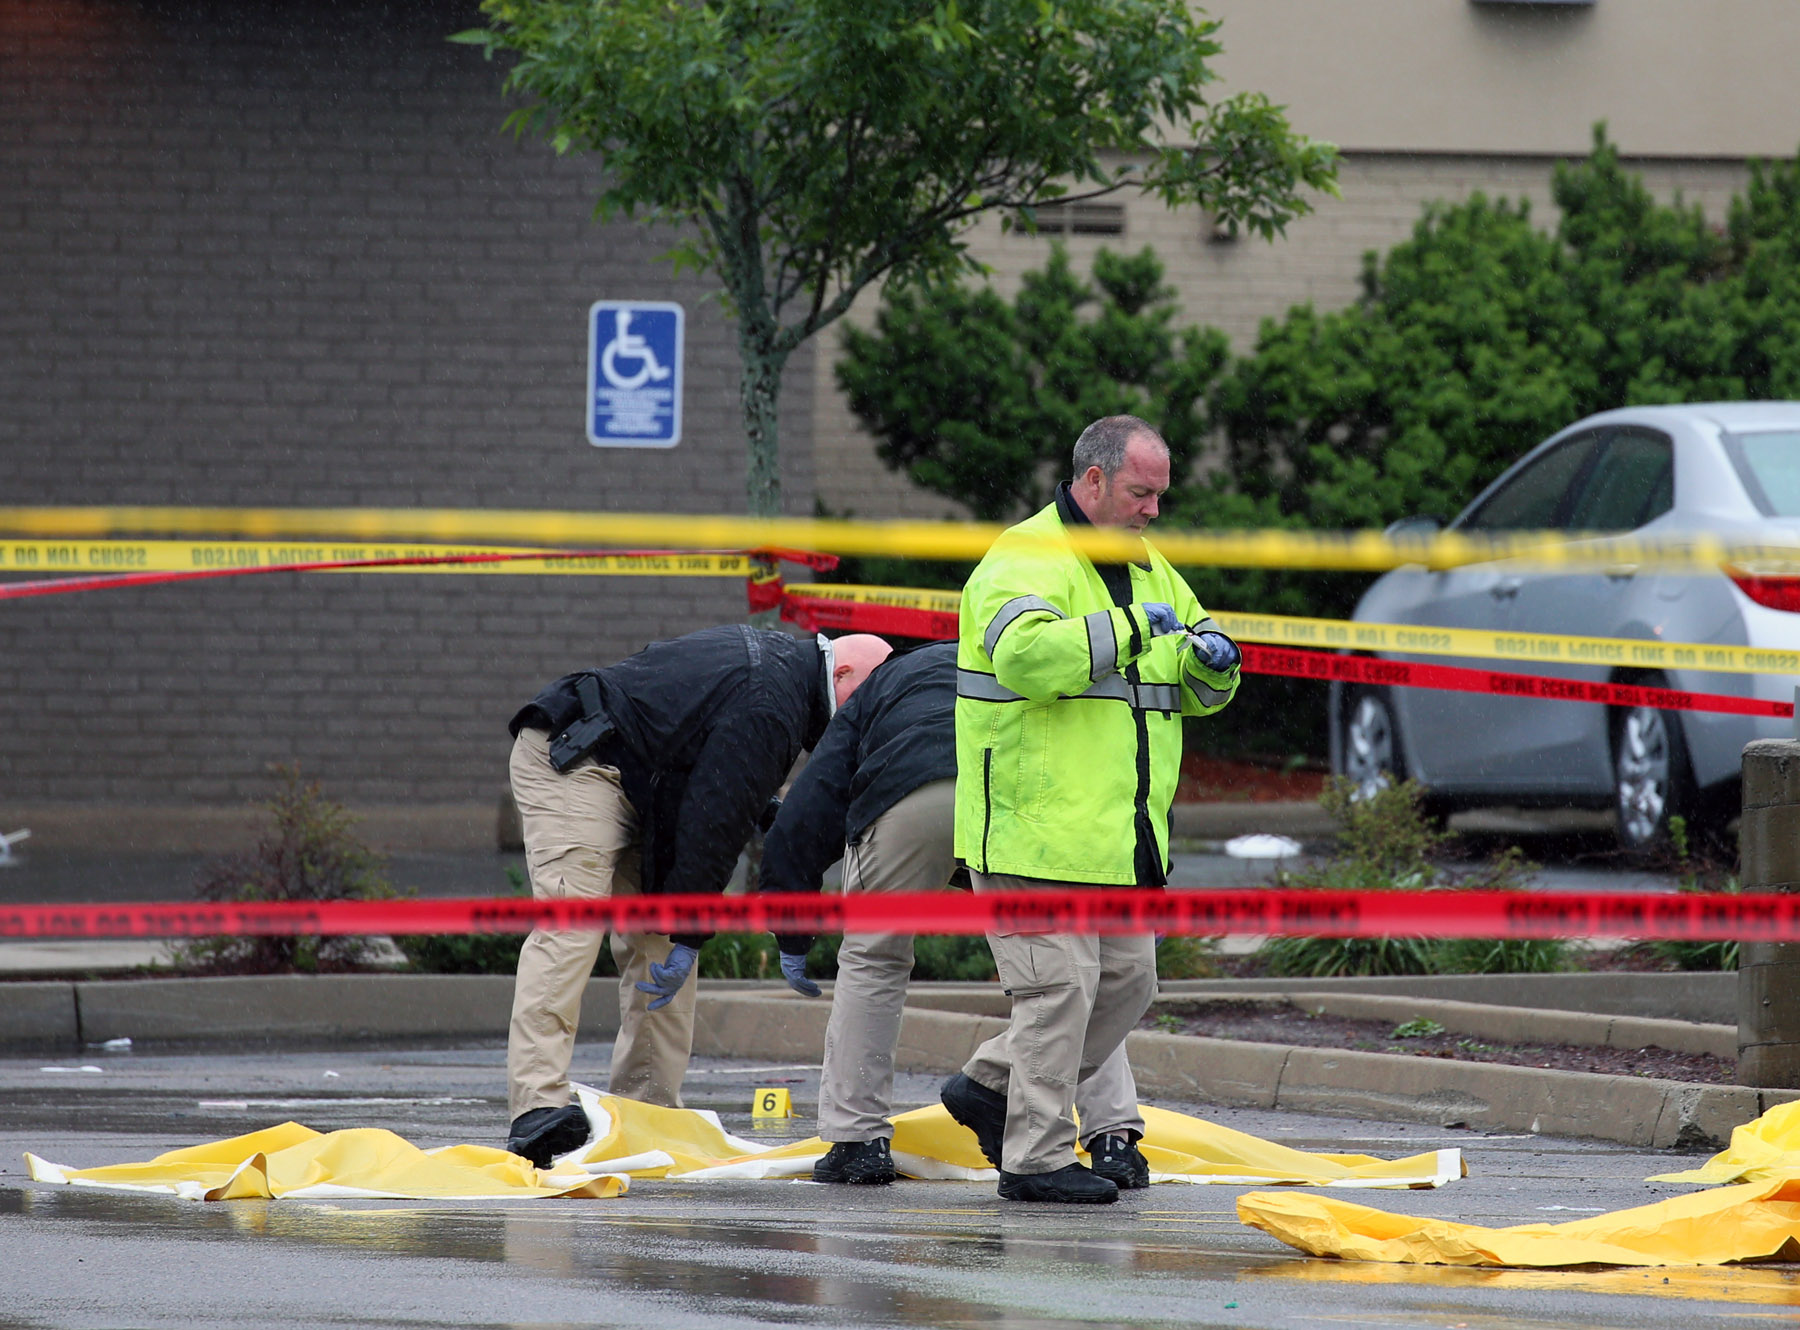 Boston Police Officer Shoots and Kills Possible Terror Suspect